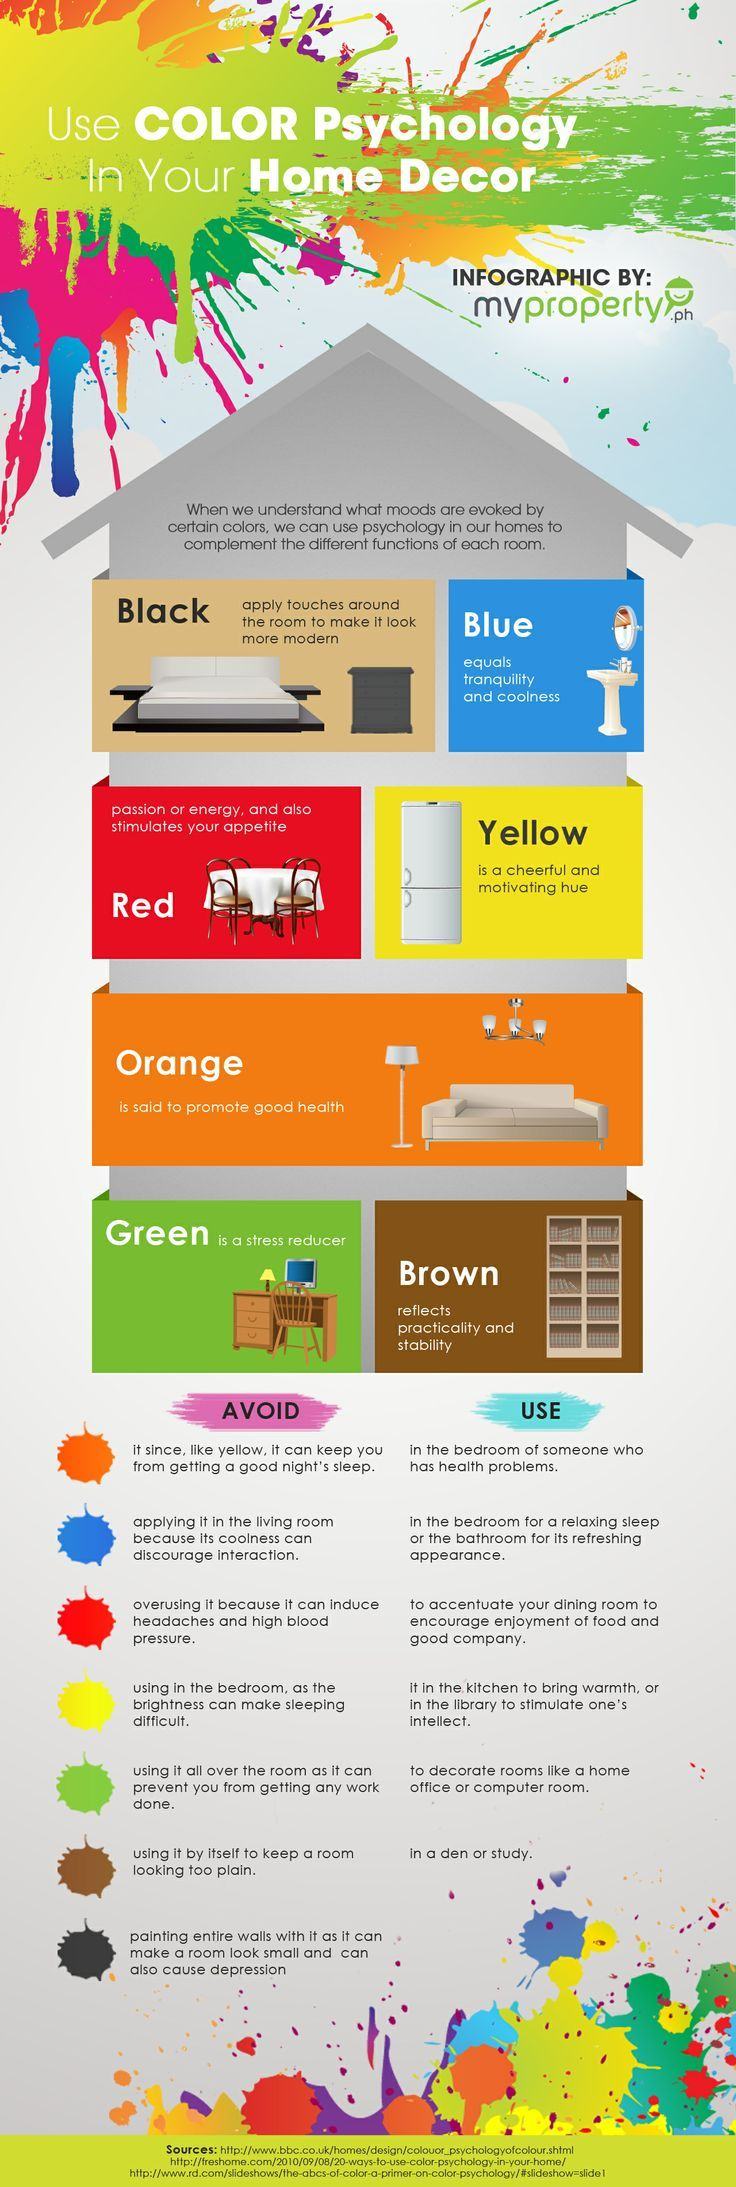 17 best images about color psychology on pinterest